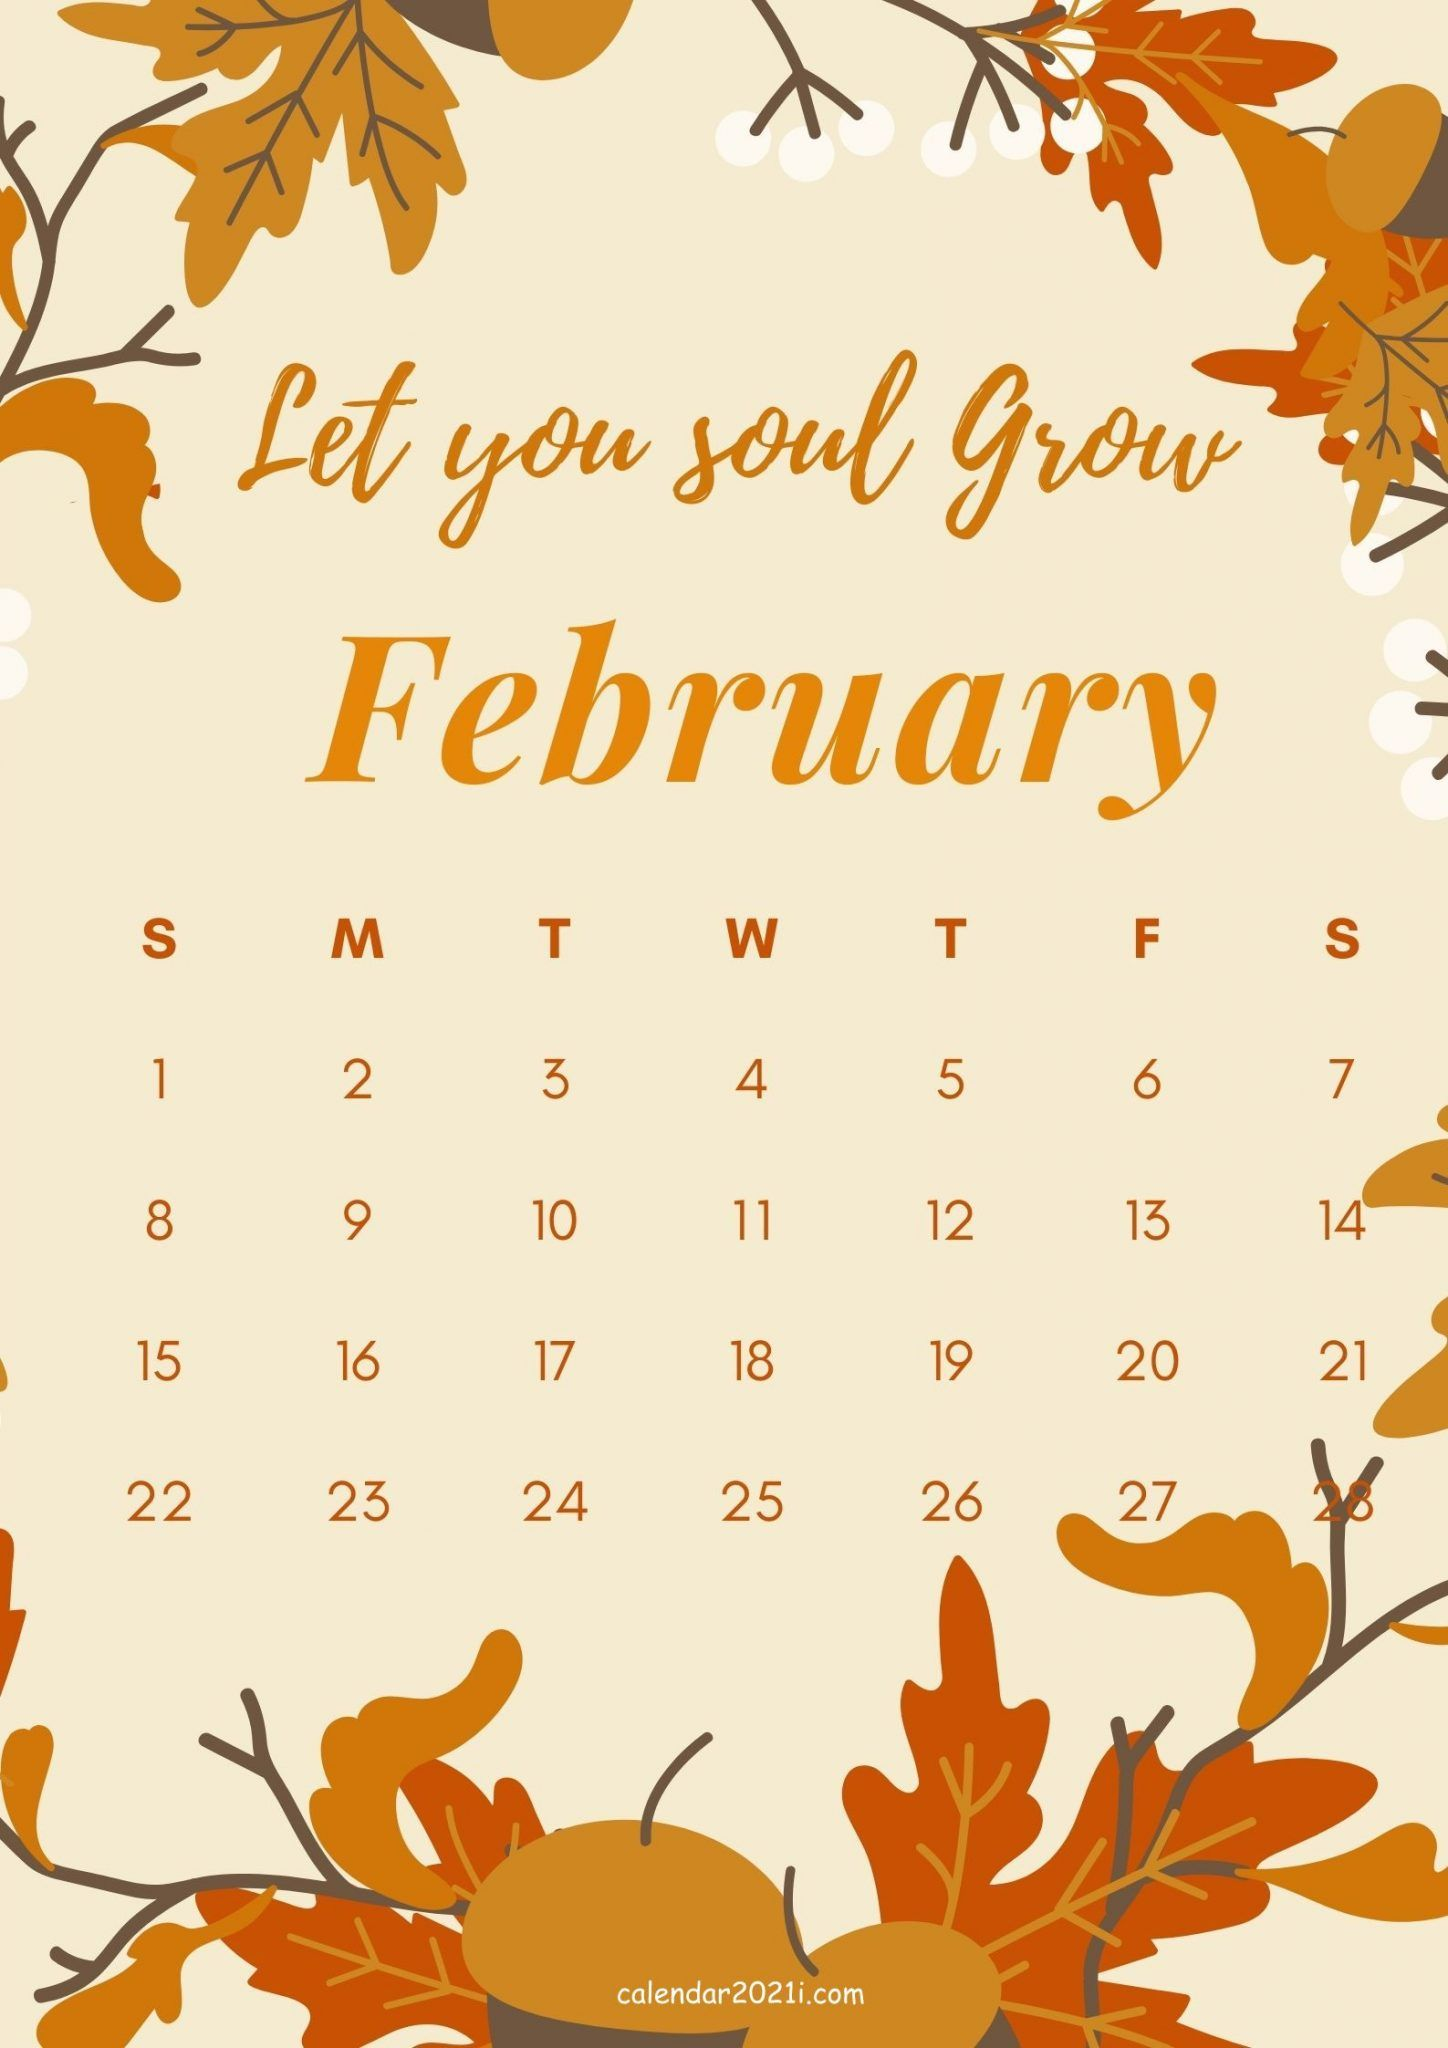 February 2021 Motivational Quote Calendar Monthly